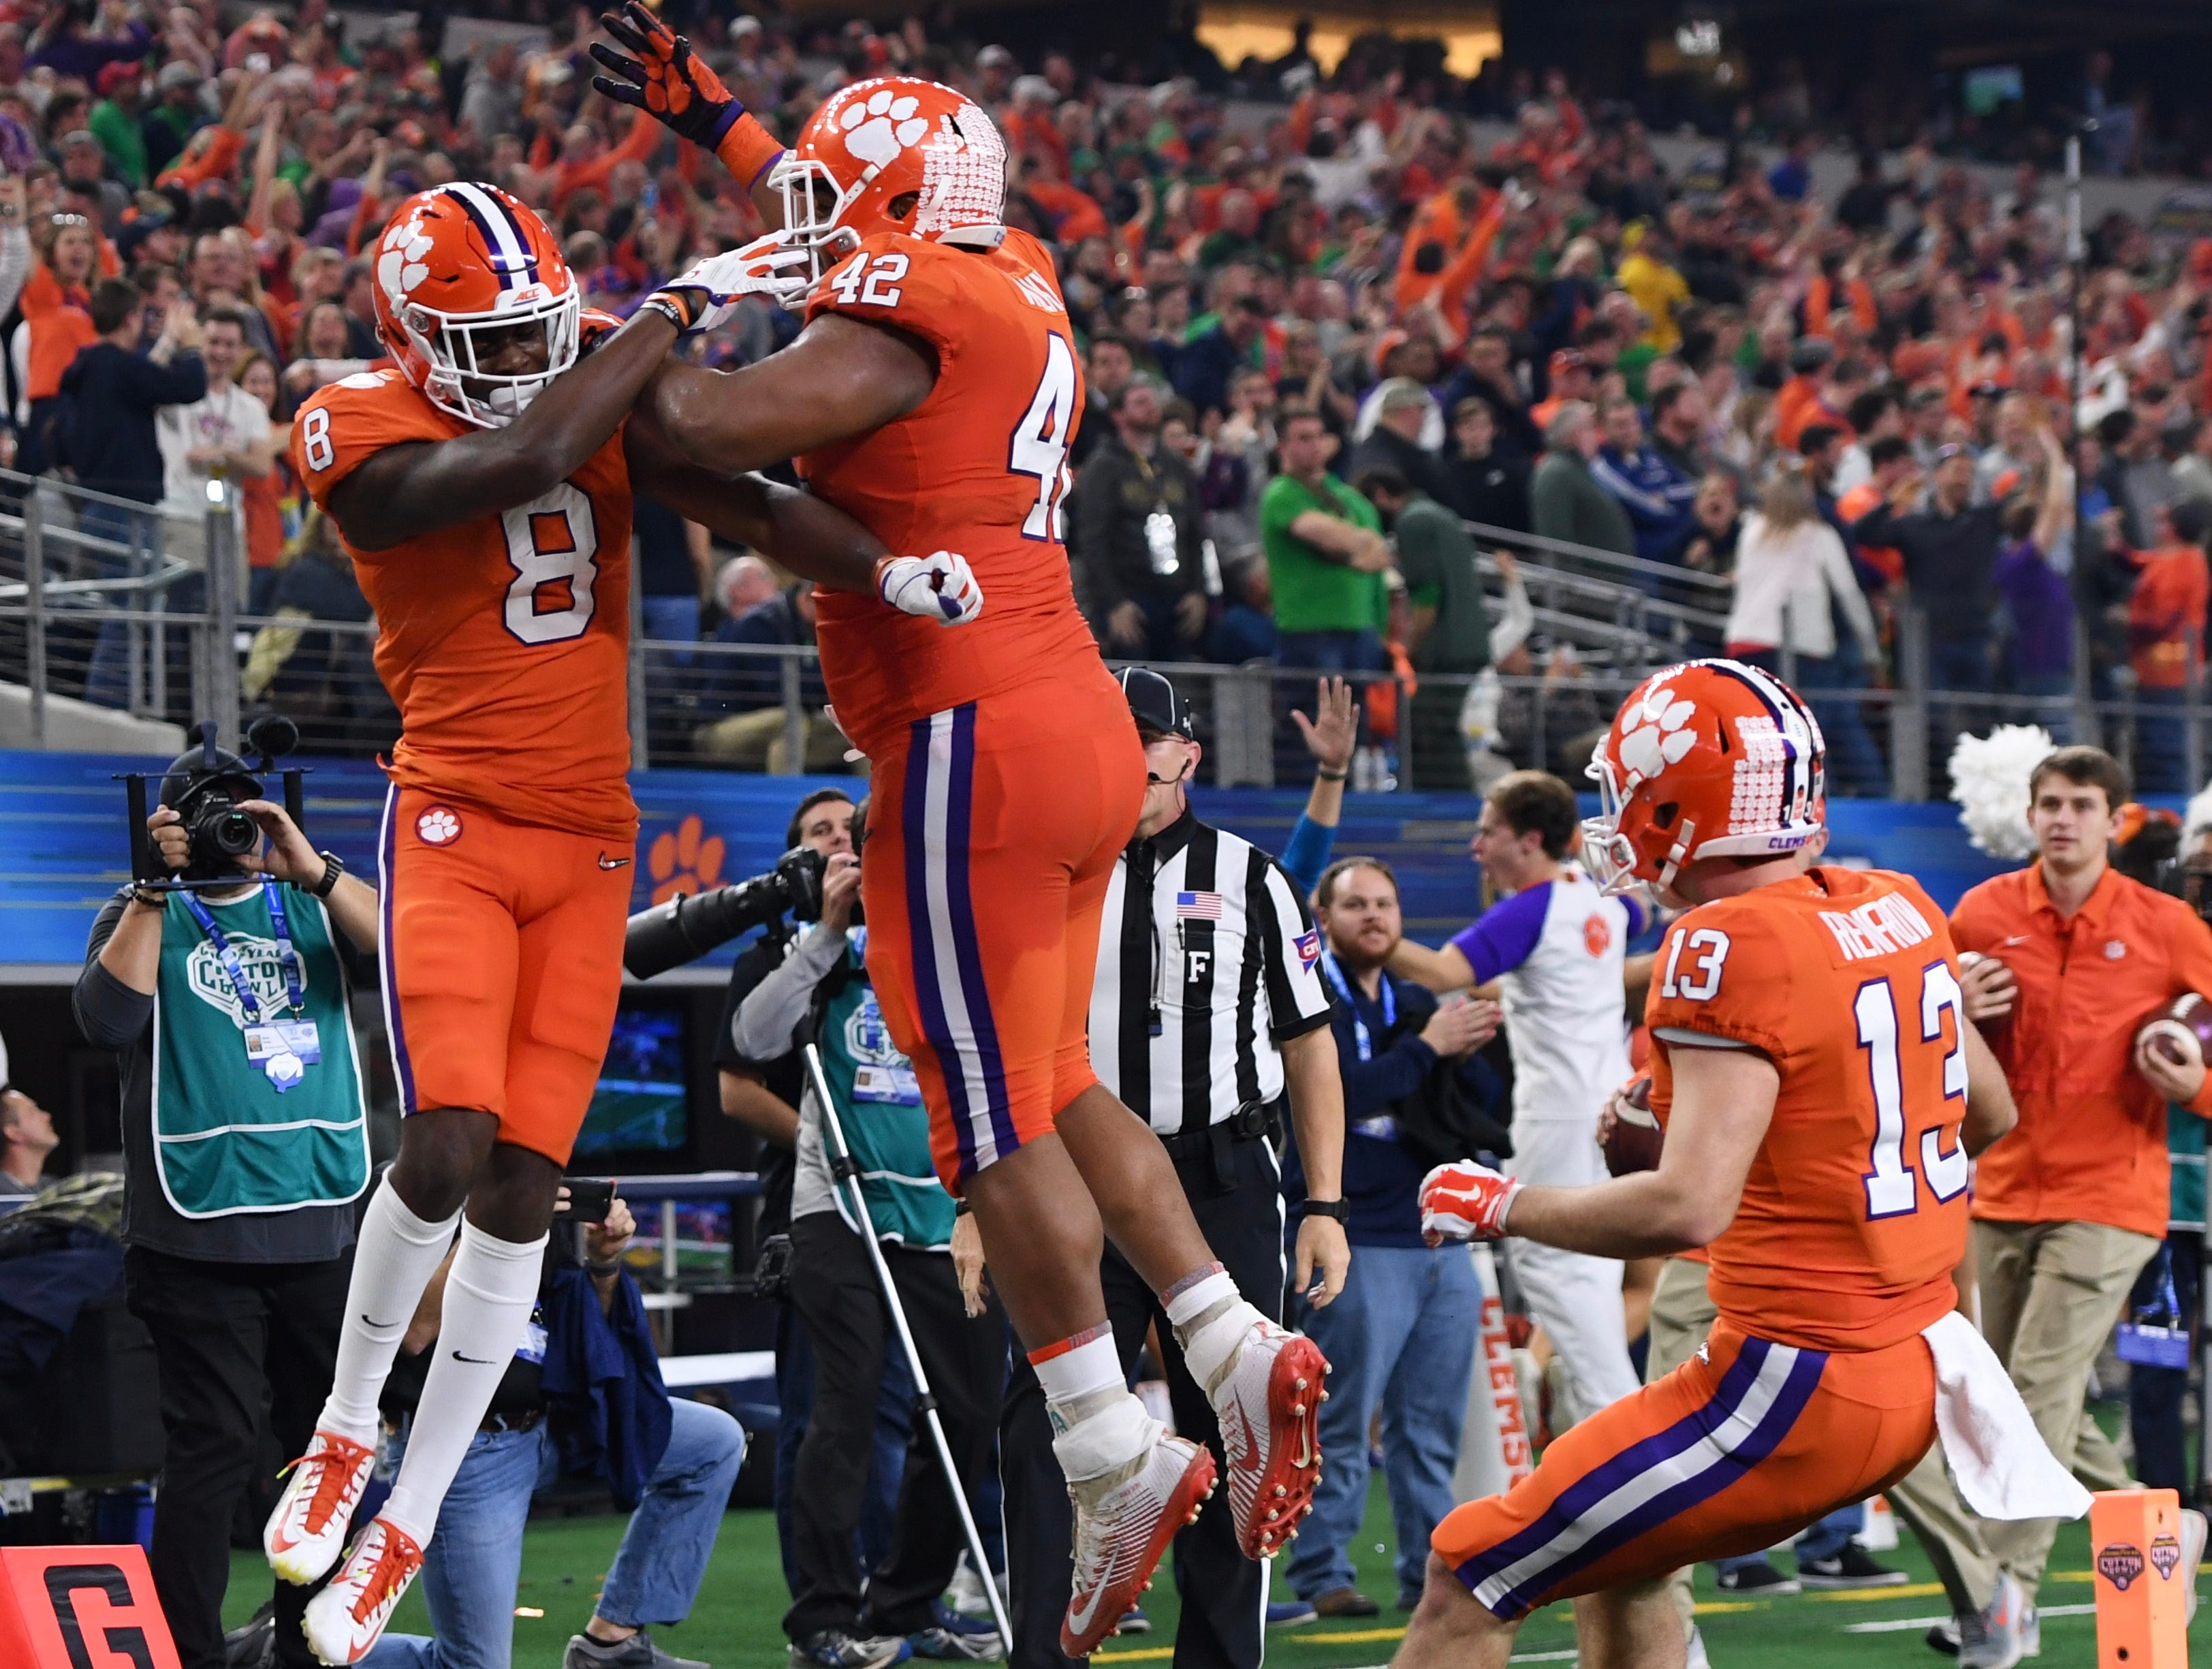 Clemson receiver Justyn Ross scores his second touchdown of the Cotton Bowl in the second quarter.